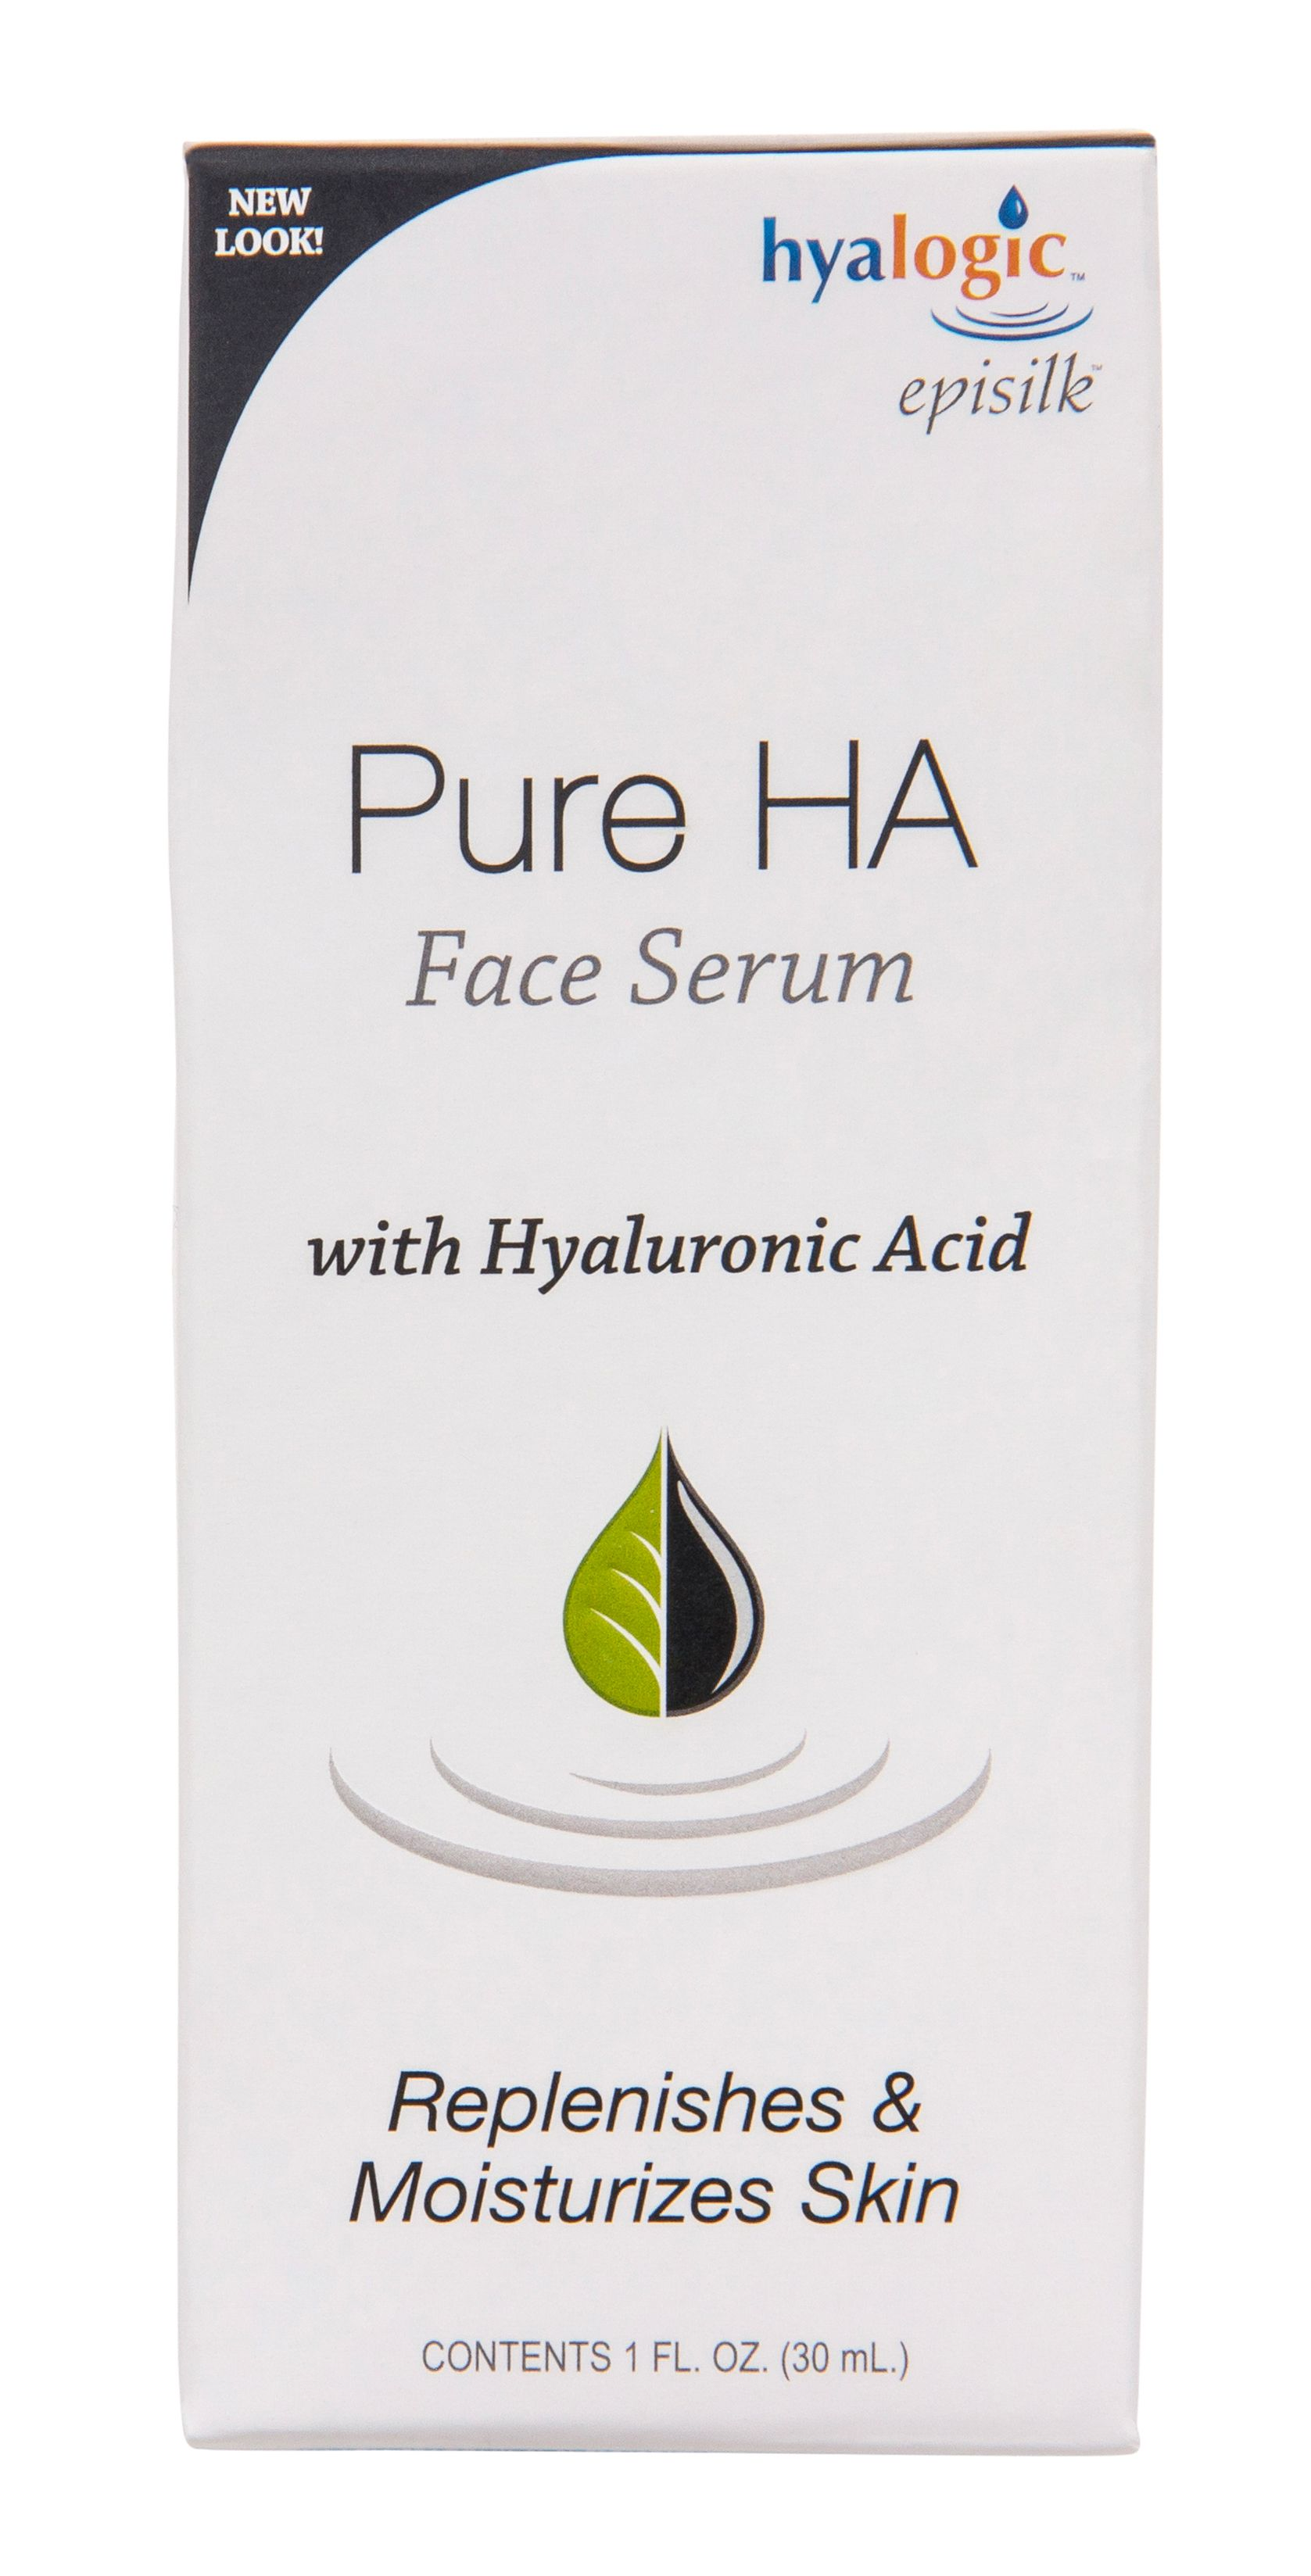 Episilk Pure Hyaluronic Acid, Face Serum, 0.47 floz #faceserum